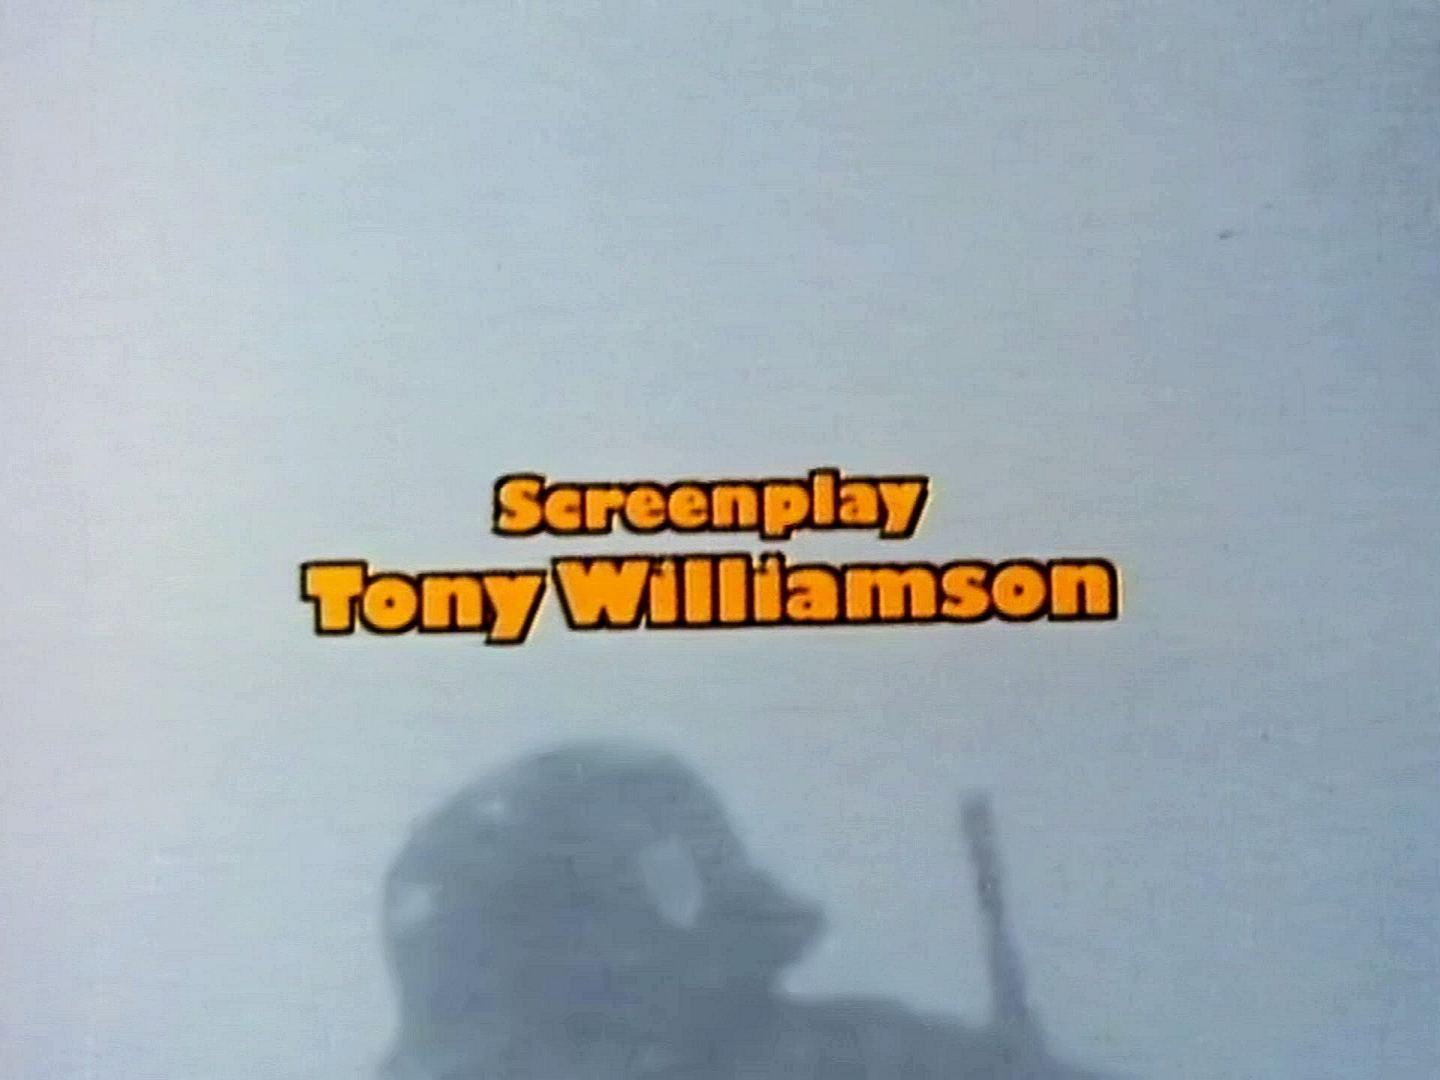 Main title from Breakthrough (1979) (18). Screenplay Tony Williamson